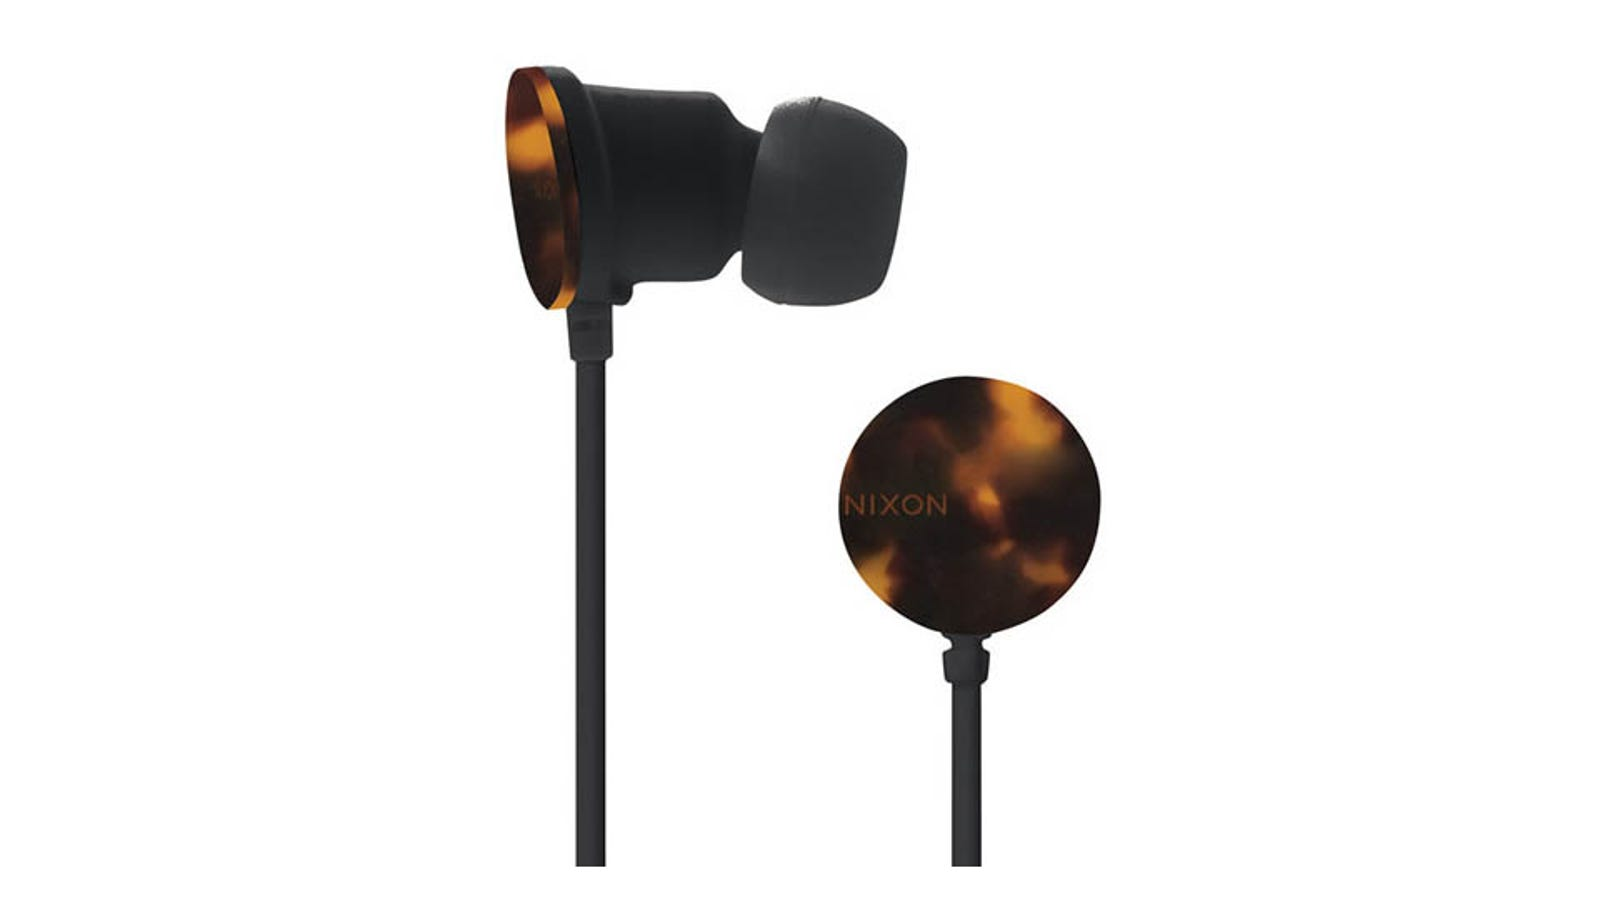 jvc extreme xplosive earbuds - Nixon Offers Up Tortoise Shell Earbuds to Match Your Tortoise Shell Sunglasses